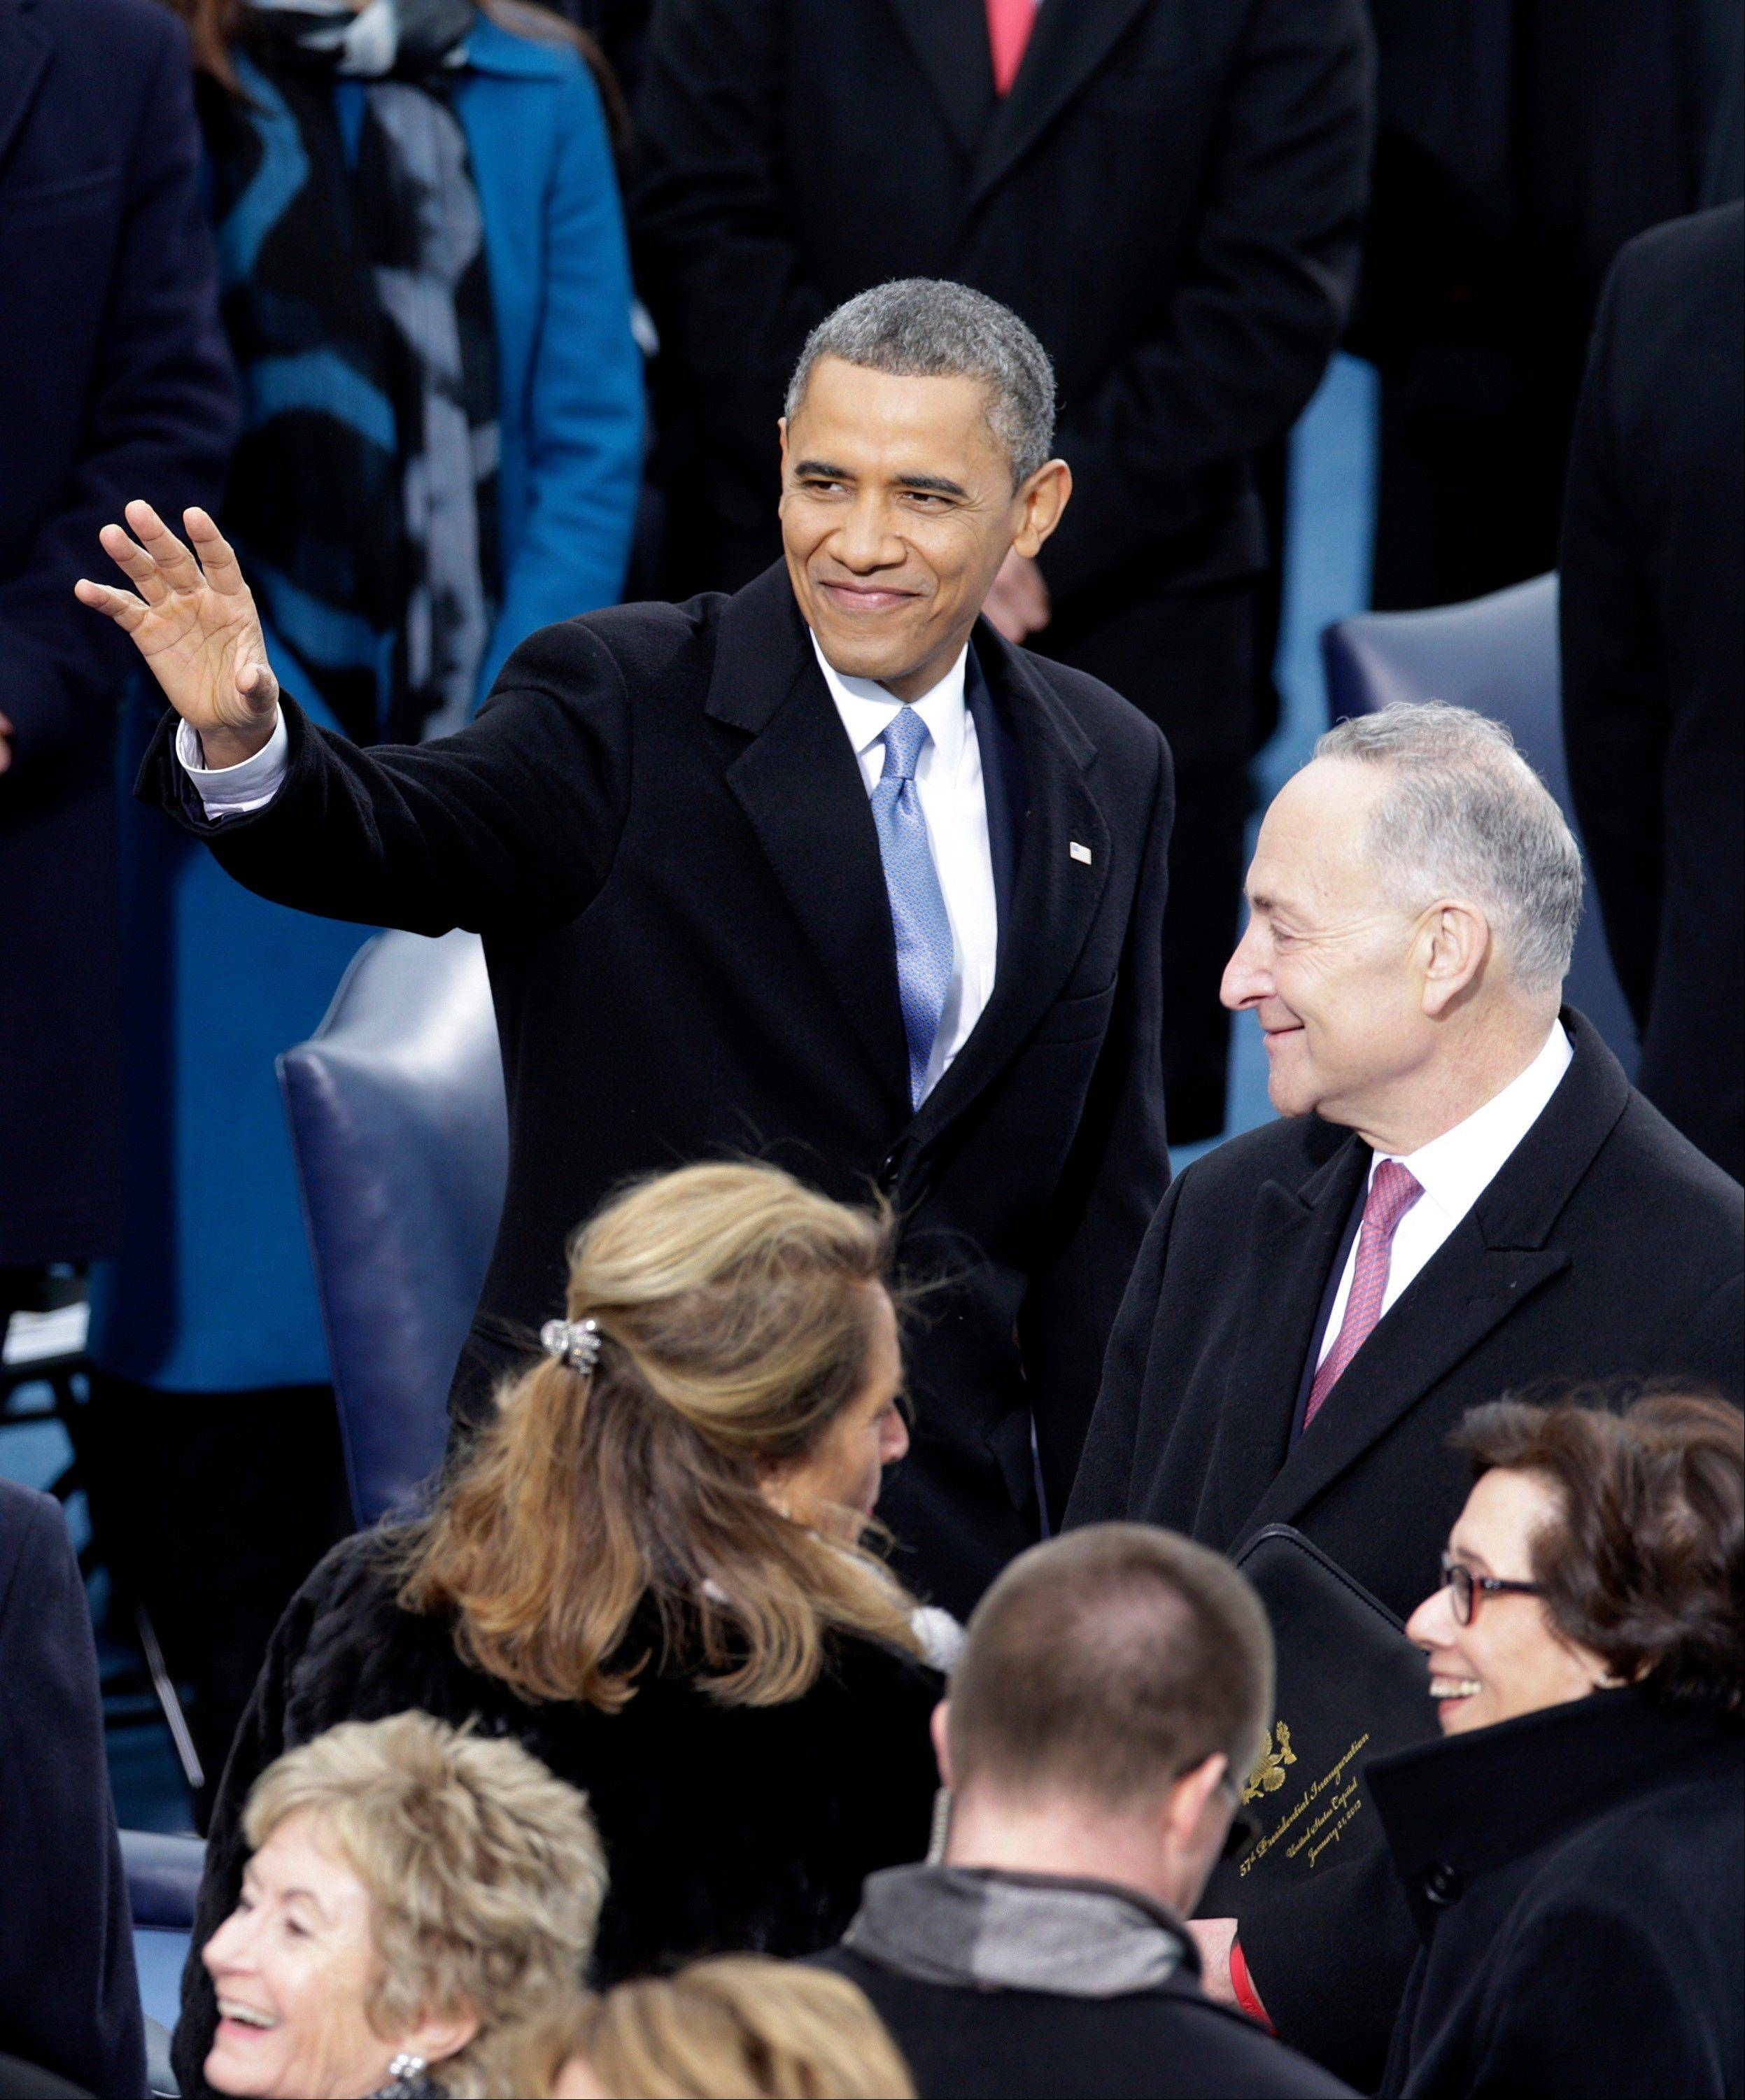 U.S. President Barack Obama, left, waves as Senator Charles Schumer, a Democrat from New York, looks on while arriving during the presidential inauguration in Washington, D.C., U.S., on Monday, Jan. 21, 2013.